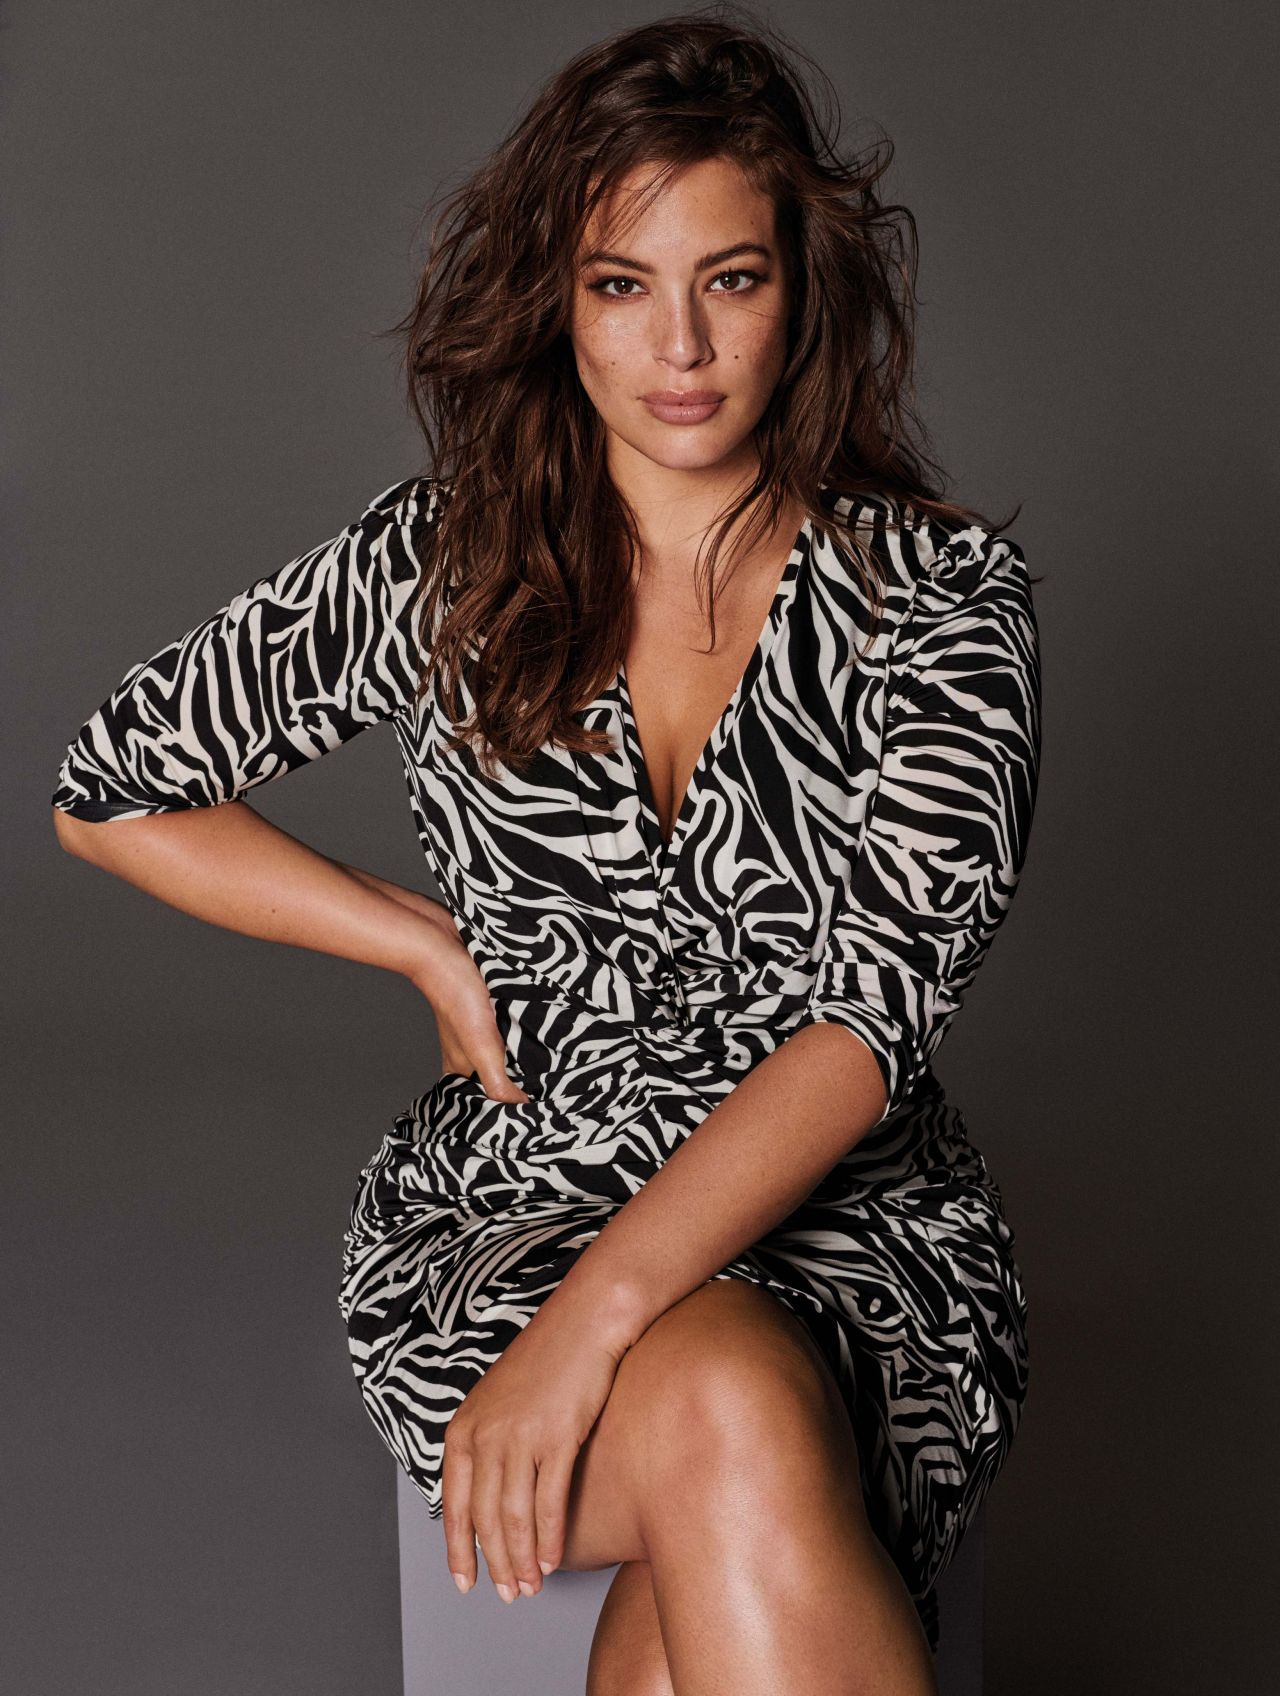 ashley graham - photo #21